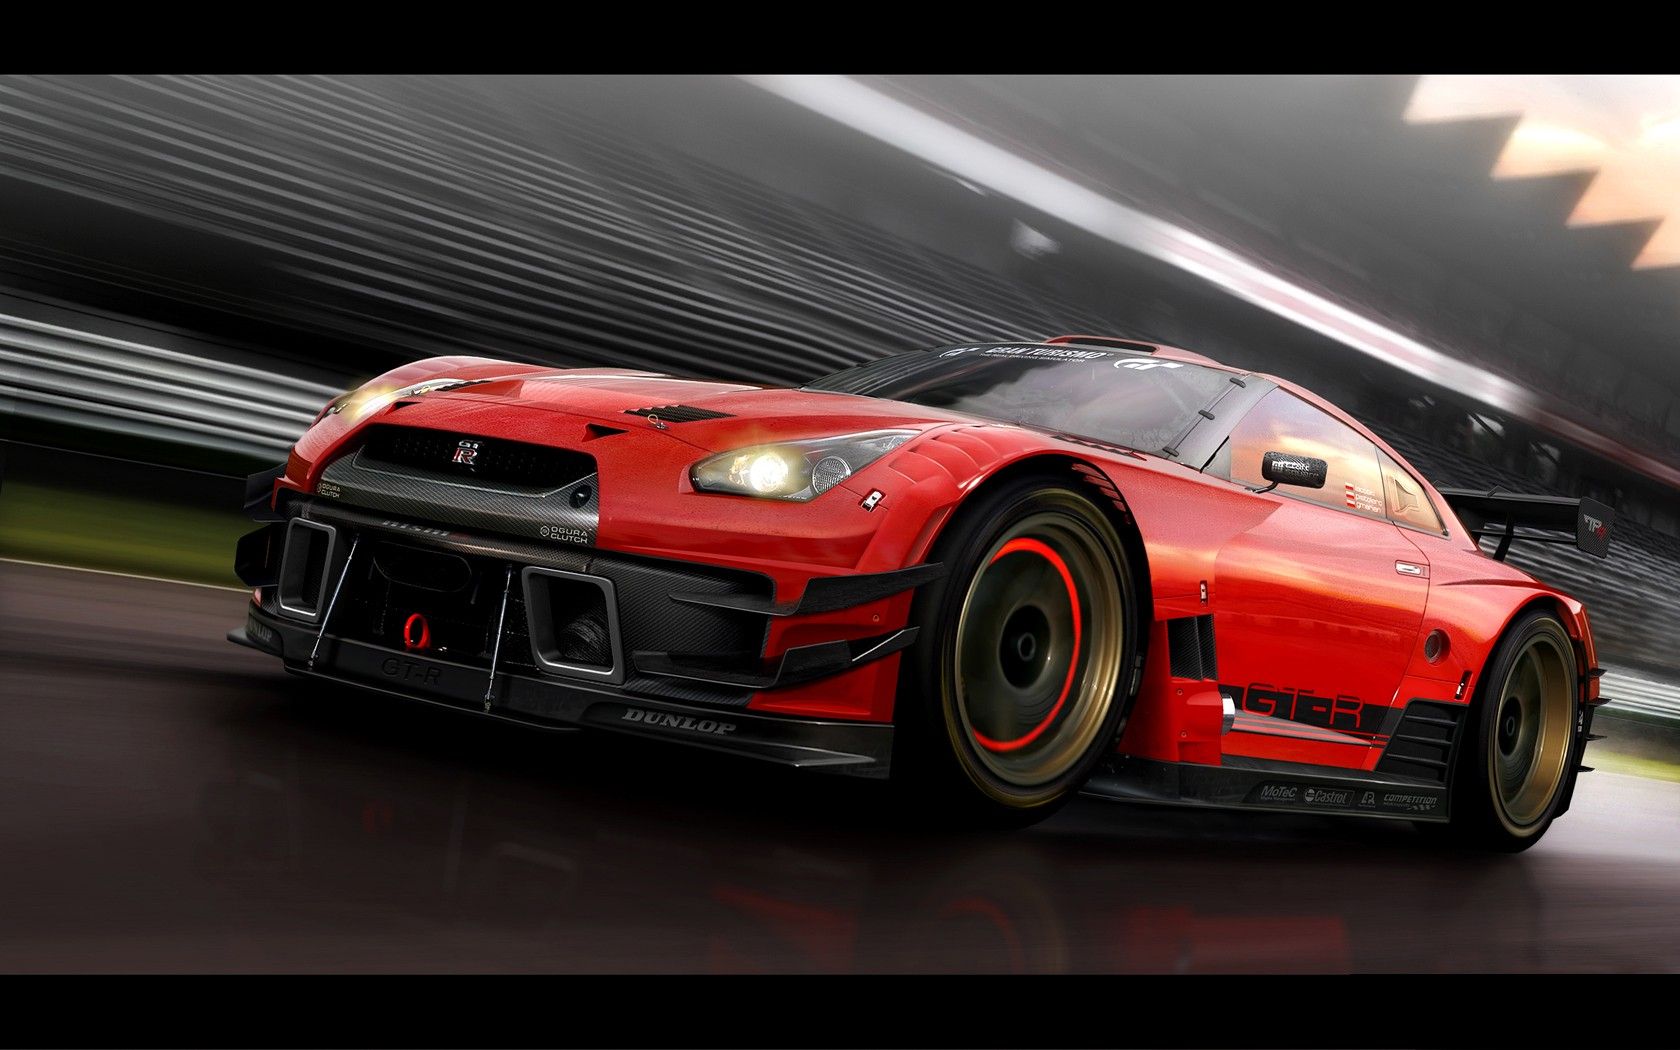 71 Gtr Wallpapers On Wallpapersafari